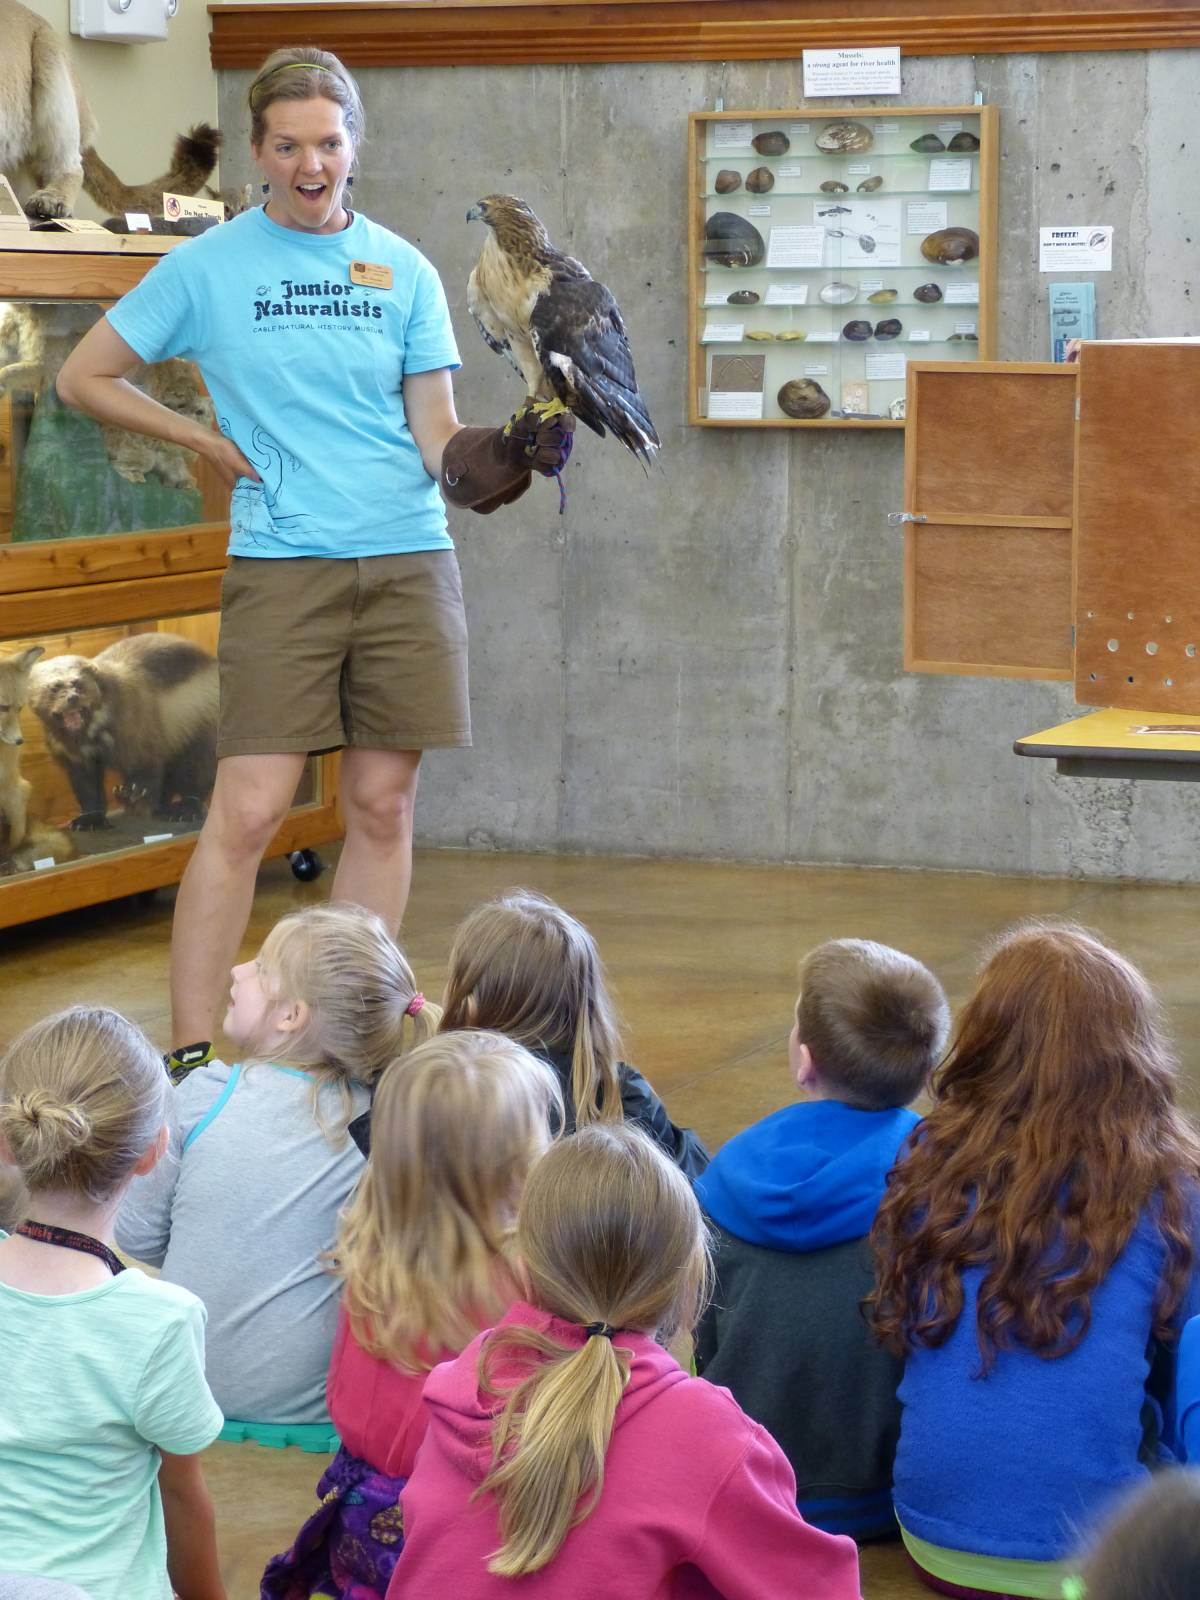 Carson at Junior Naturalist Program